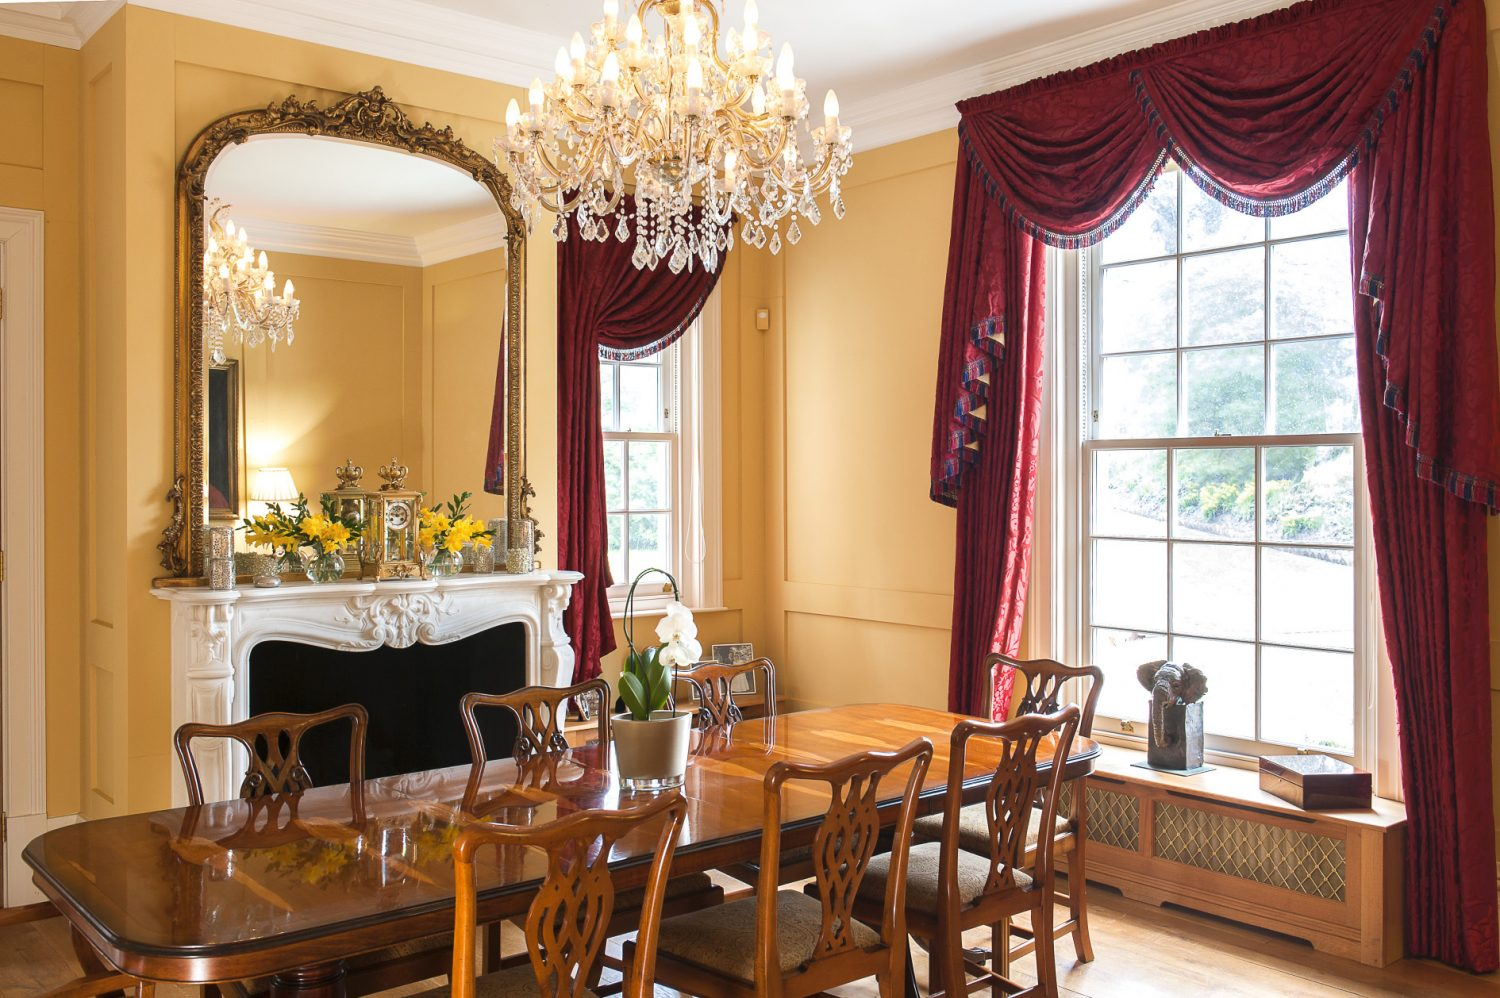 The formal dining room, to the front of the house, is painted in Farrow & Ball's 'Hay' which, paired with blood red damask curtains, makes a wonderfully atmospheric space in which to entertain. The magnificent fireplace is one of many sourced from Chesneys in London